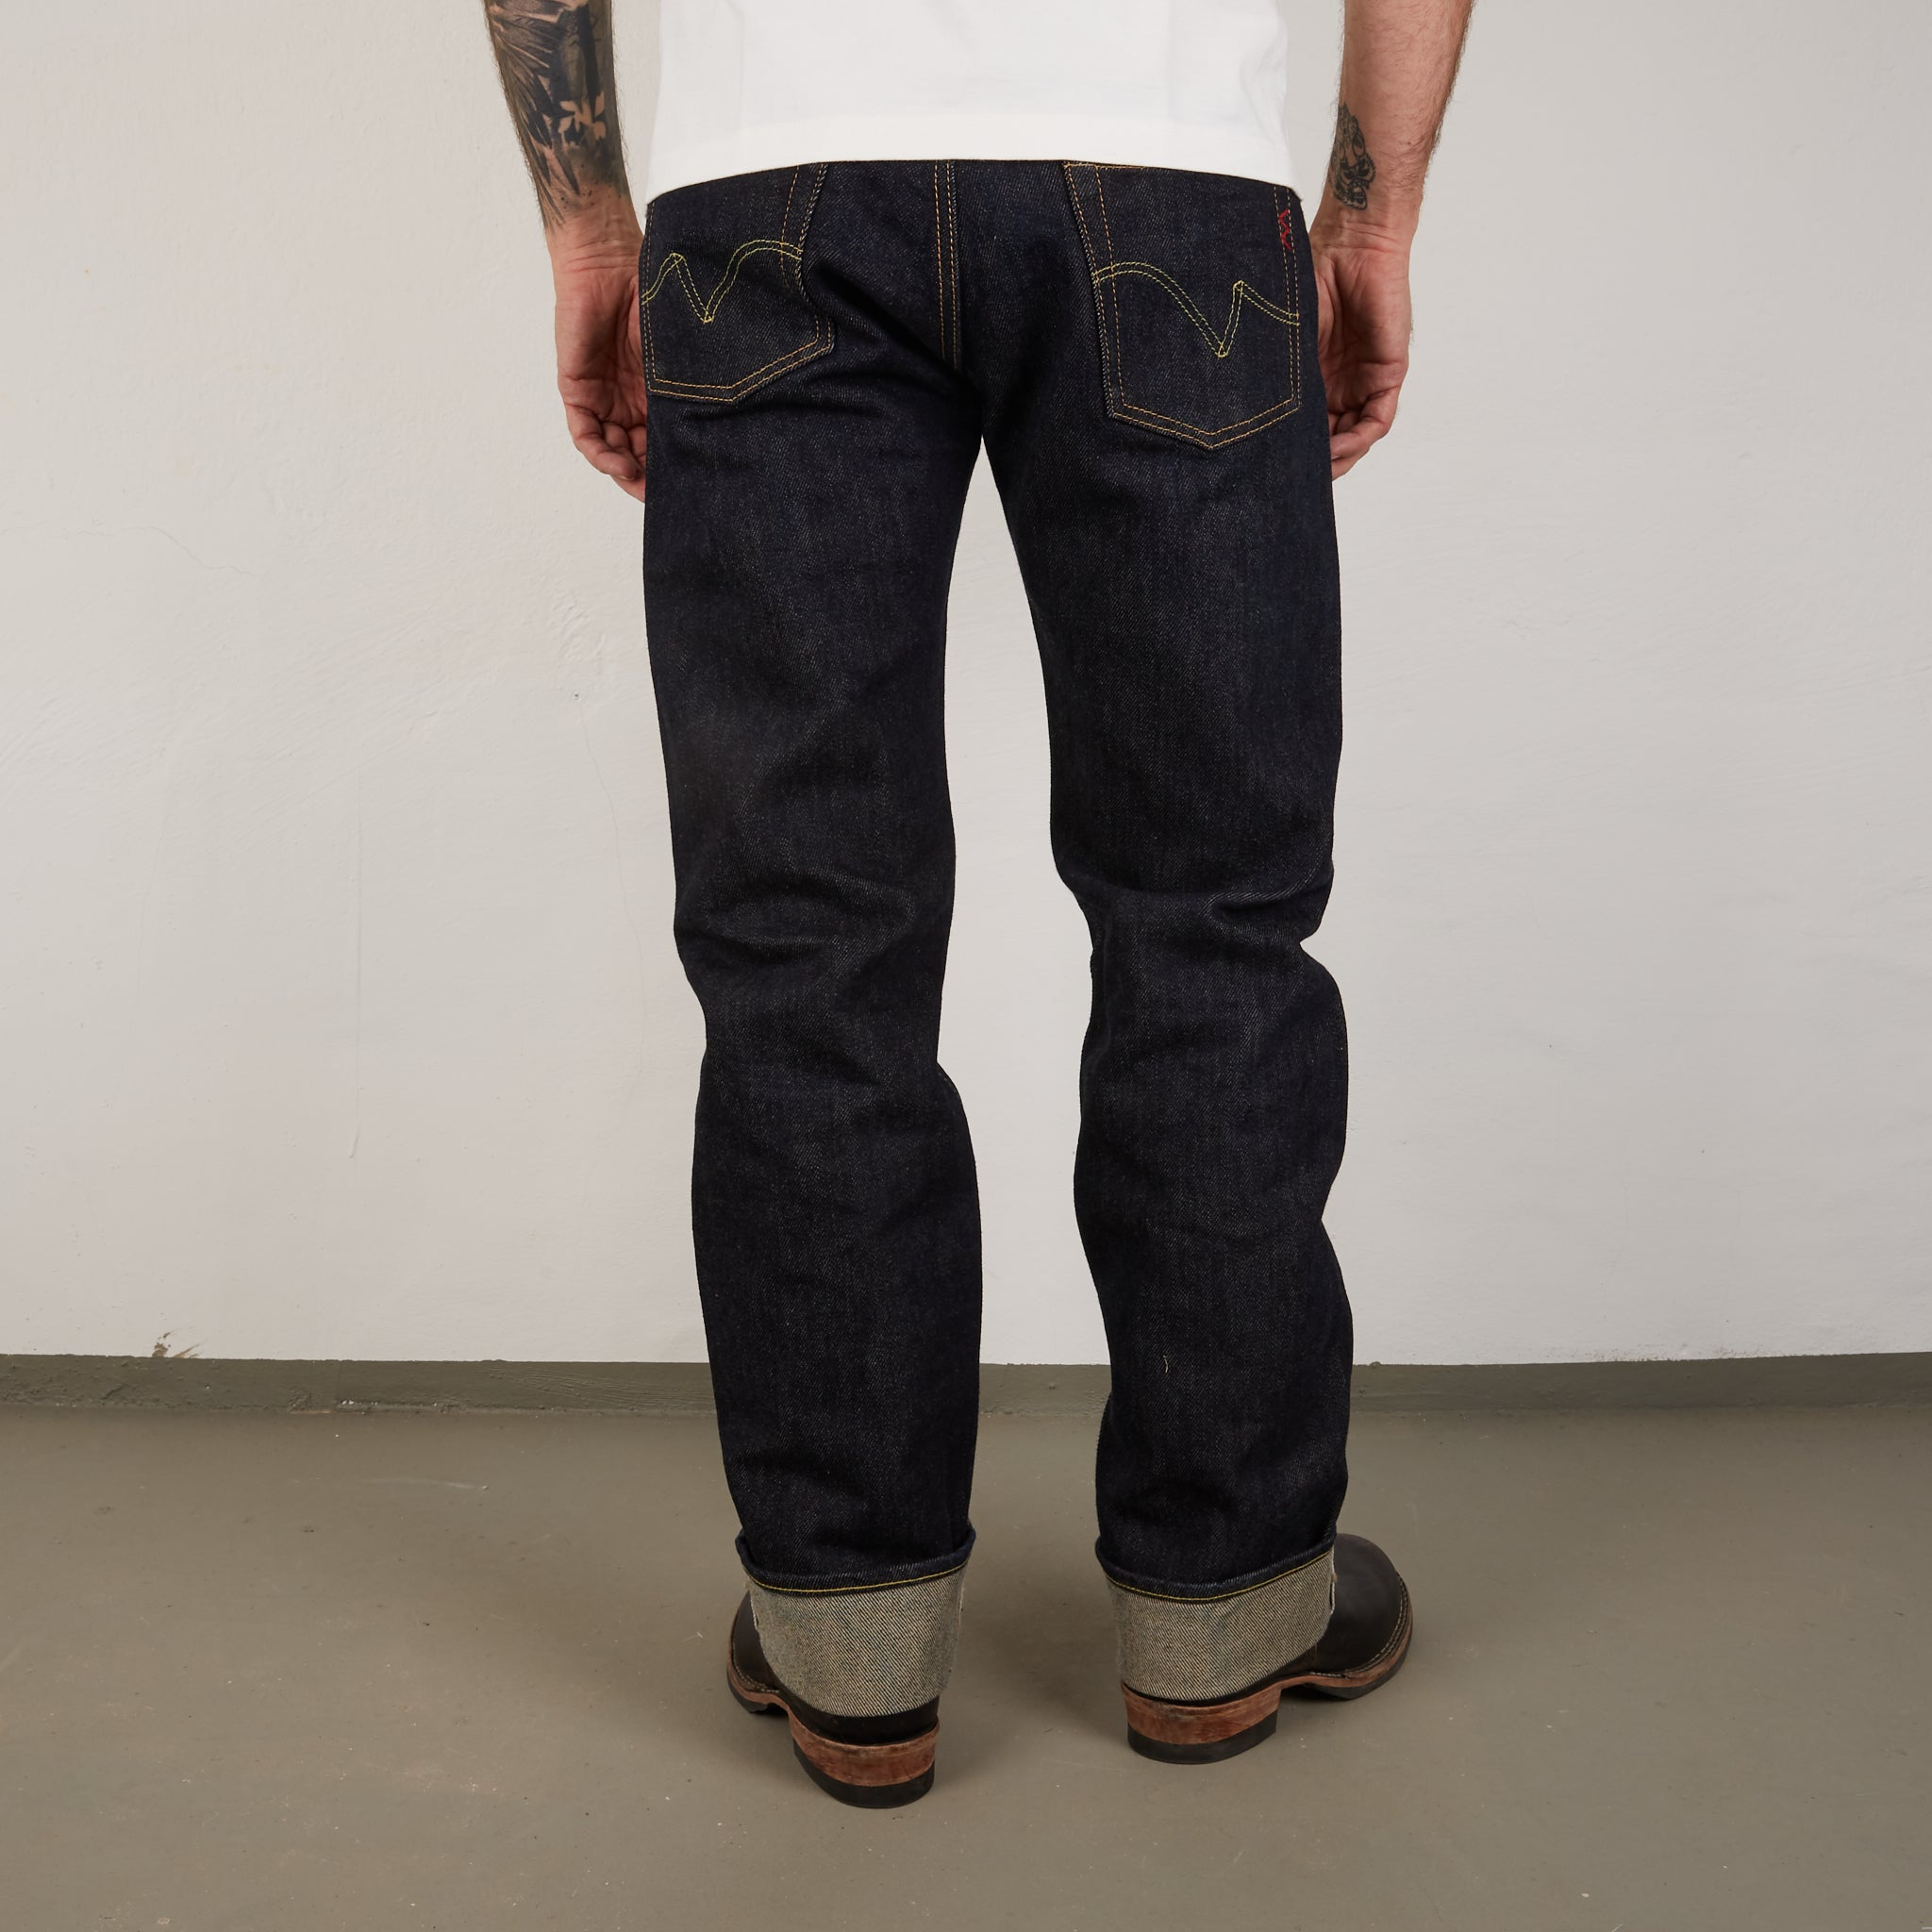 IH-634S - 21oz Straight Cut Jeans Indigo